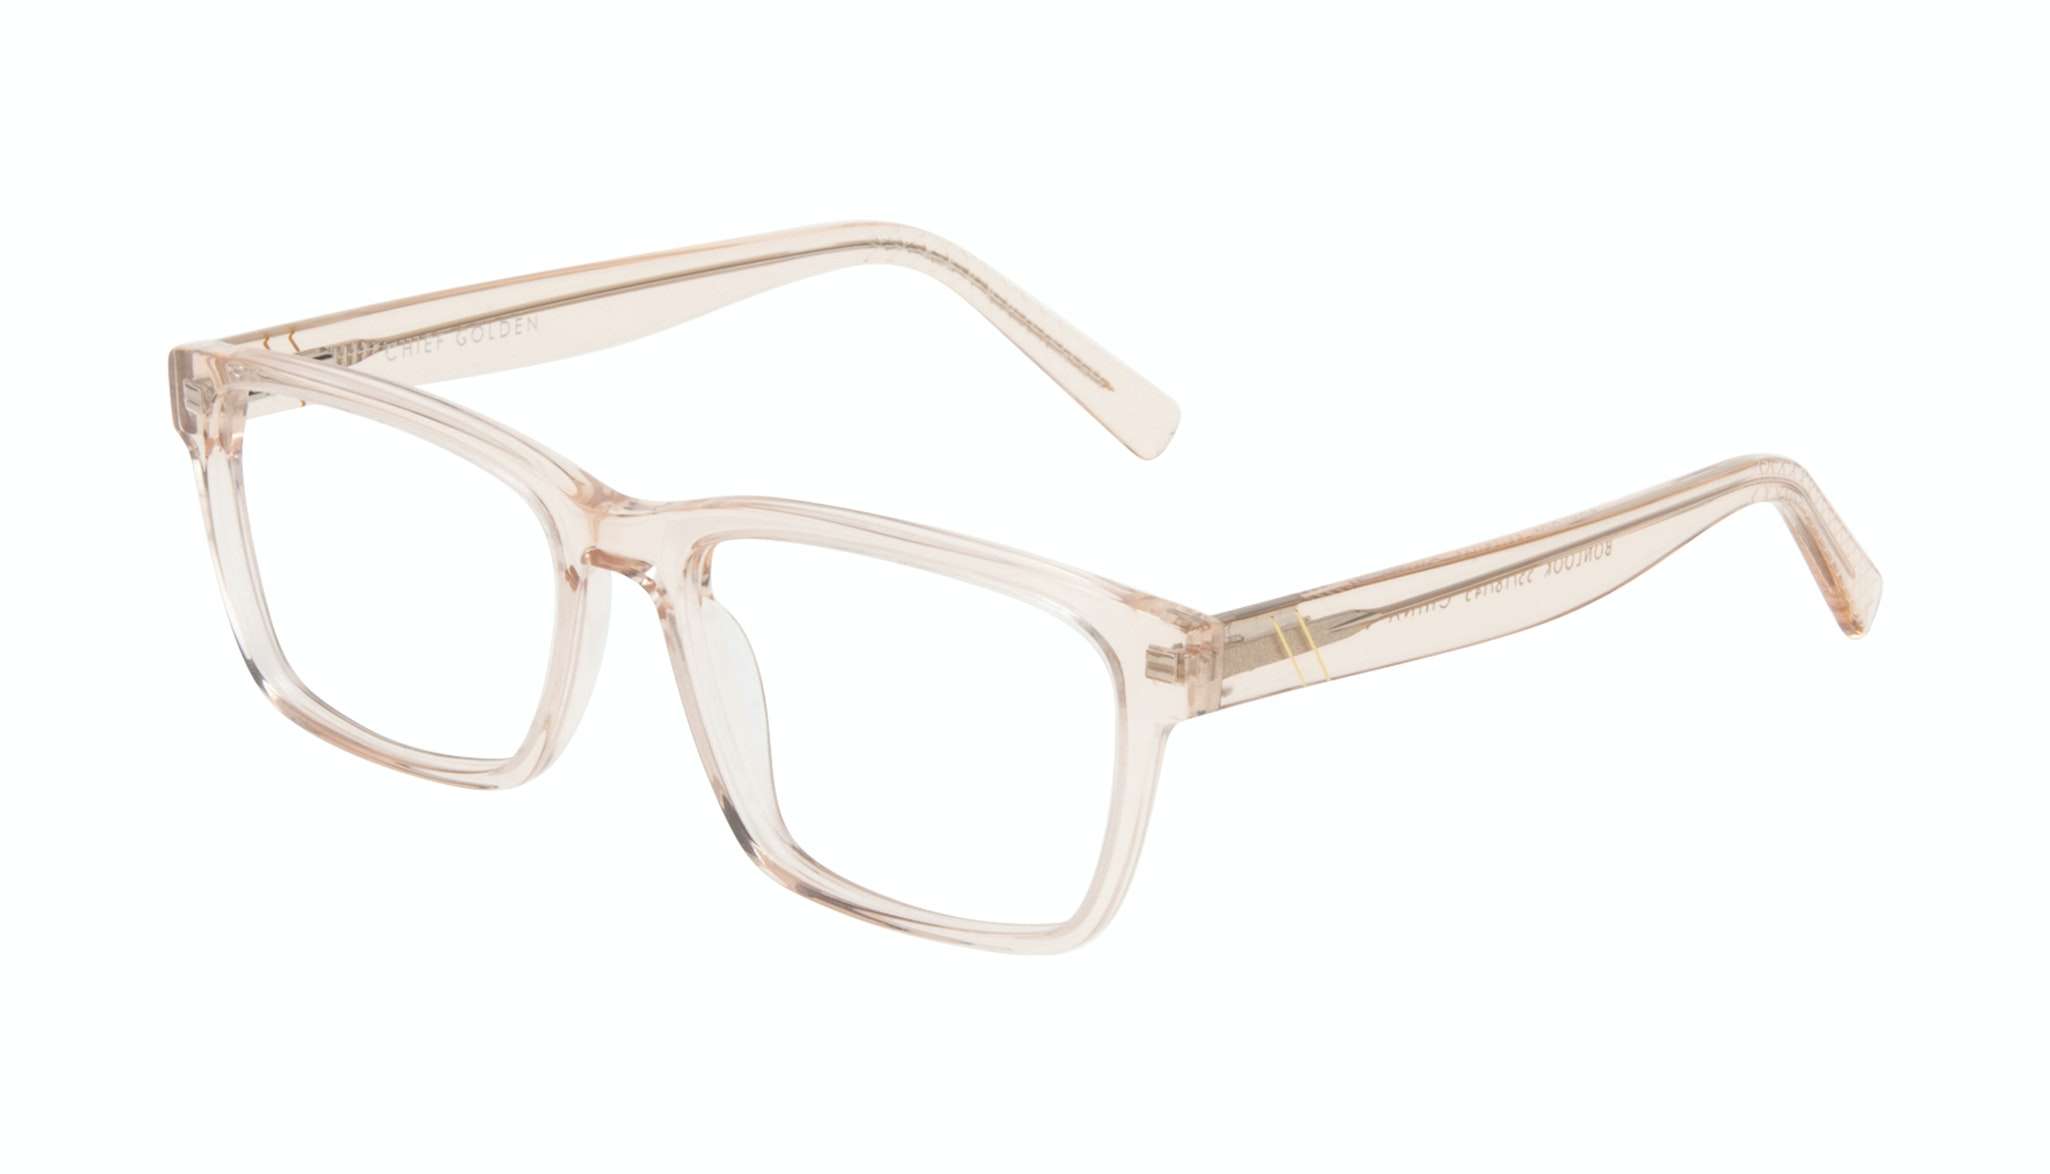 Affordable Fashion Glasses Square Eyeglasses Men Chief Golden Tilt